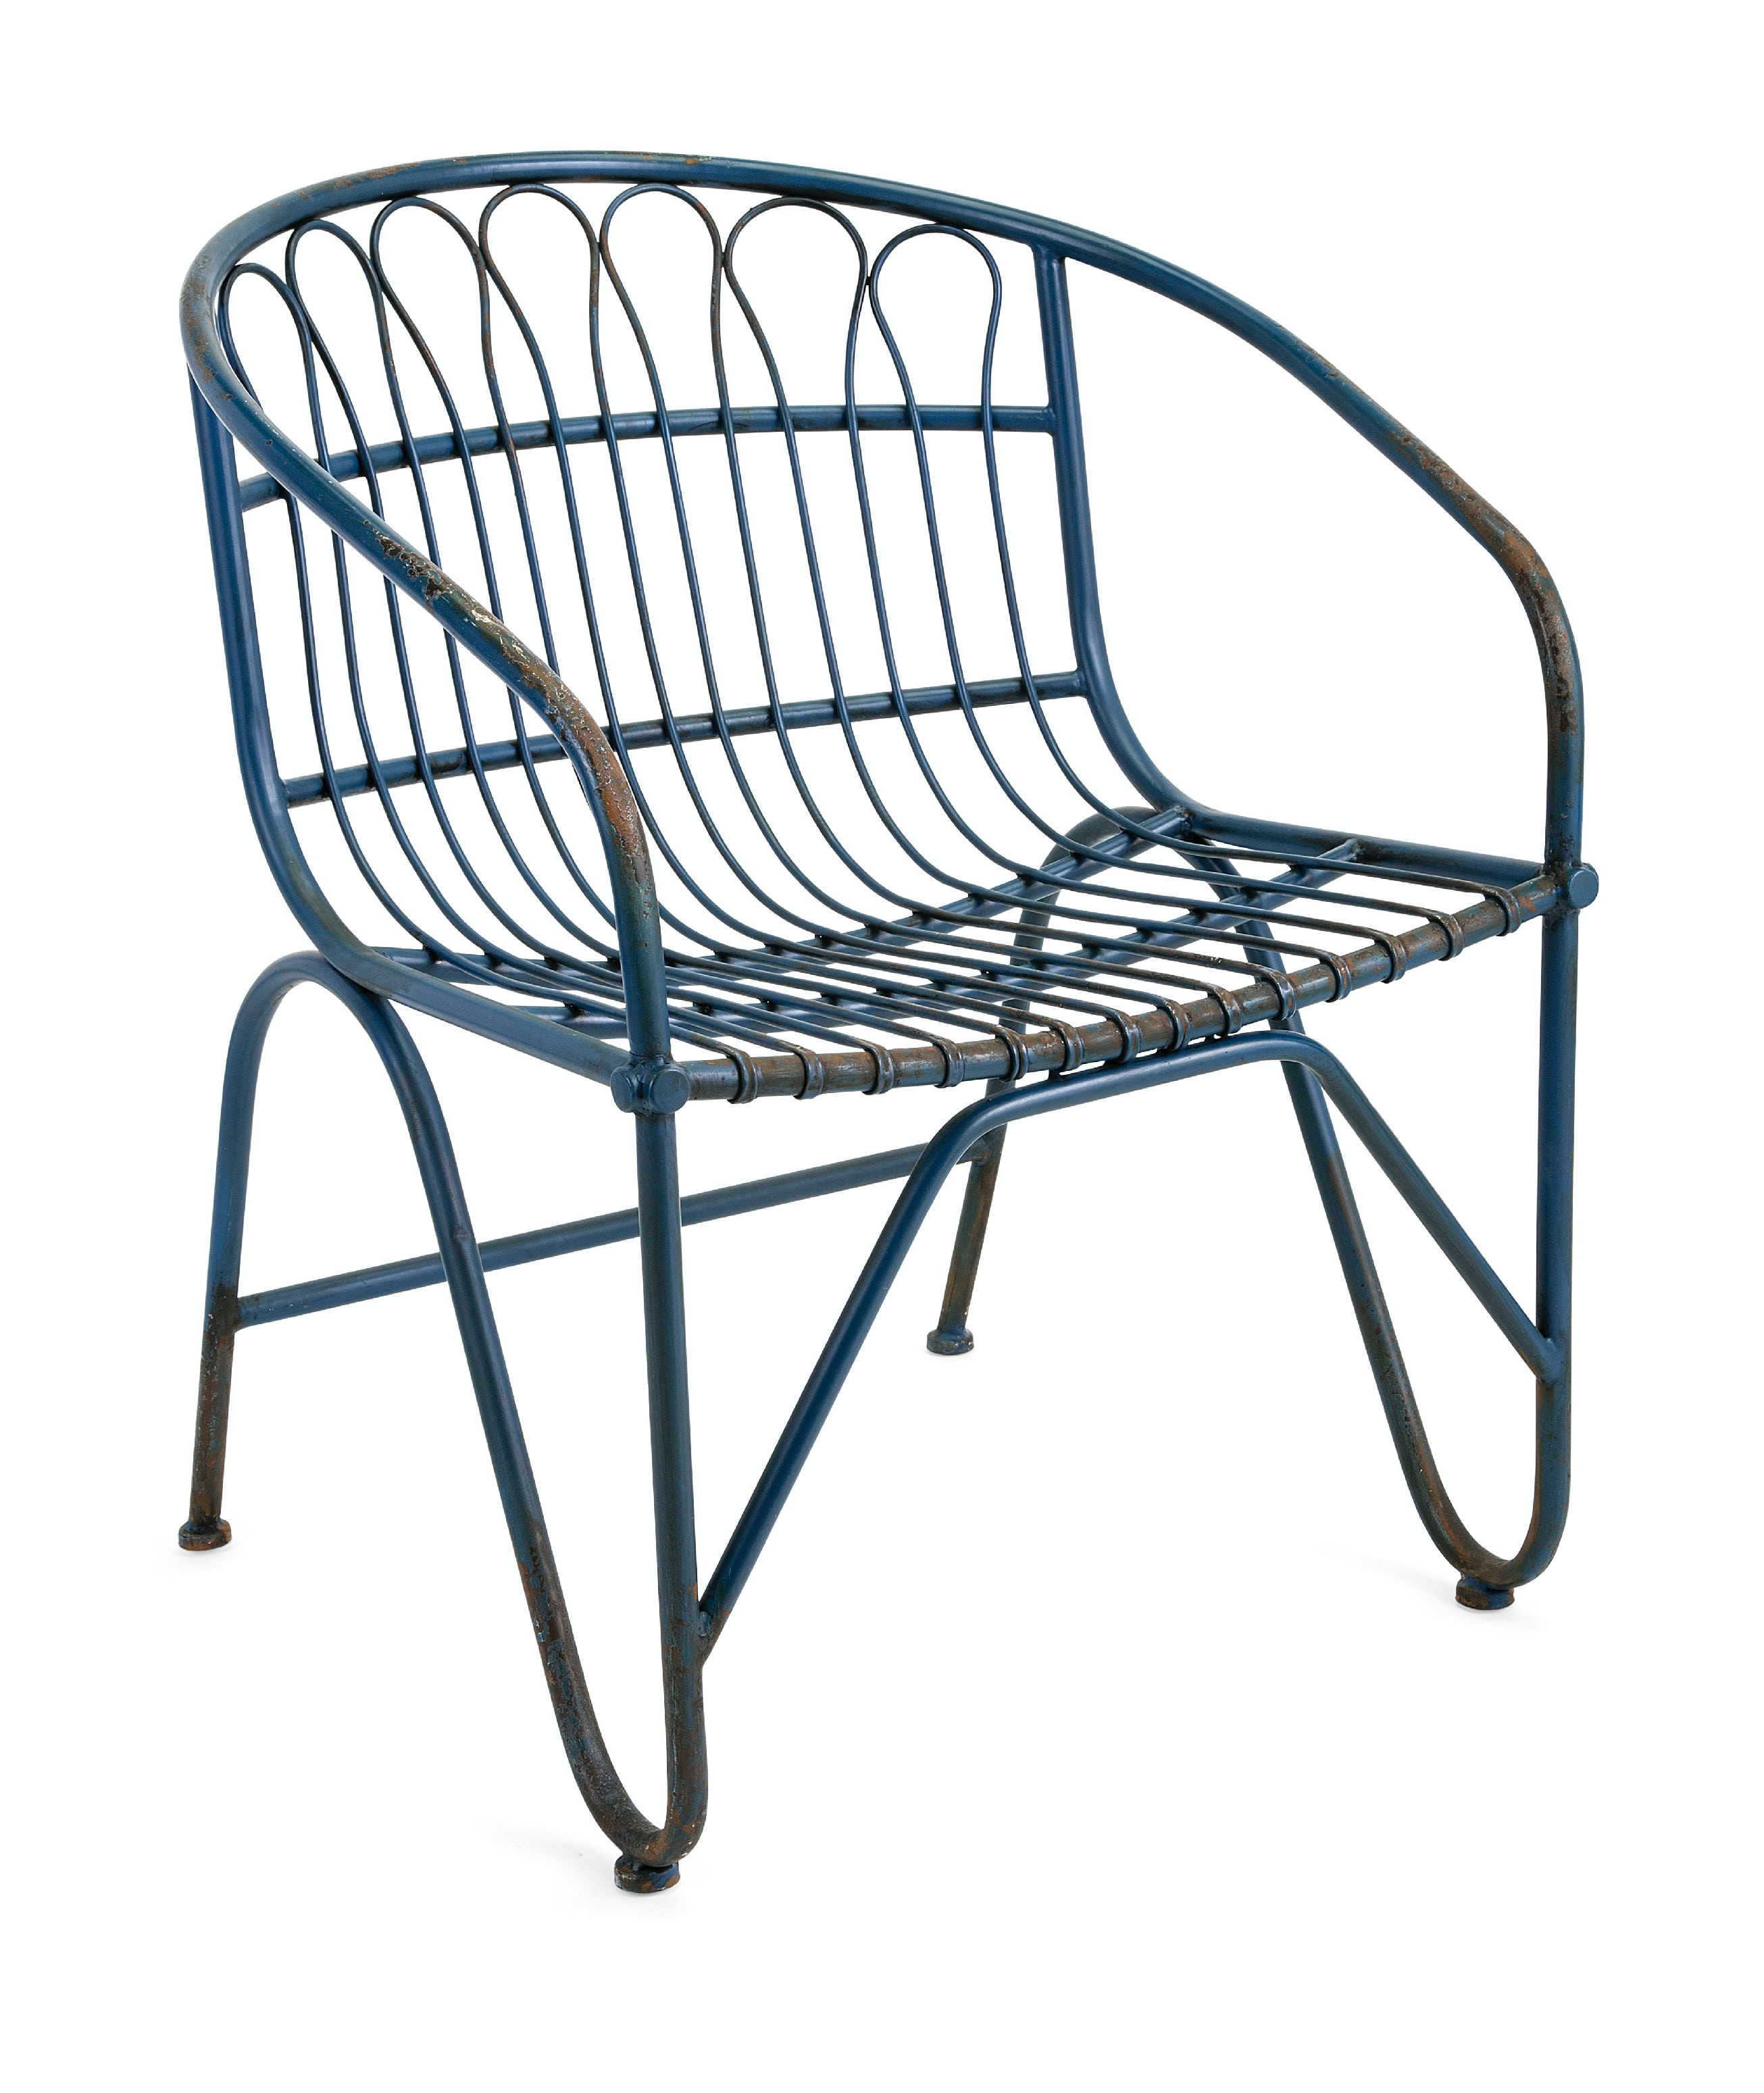 steel chair cost cheap cover hire birmingham imax corporation outdoor patio layton metal arm